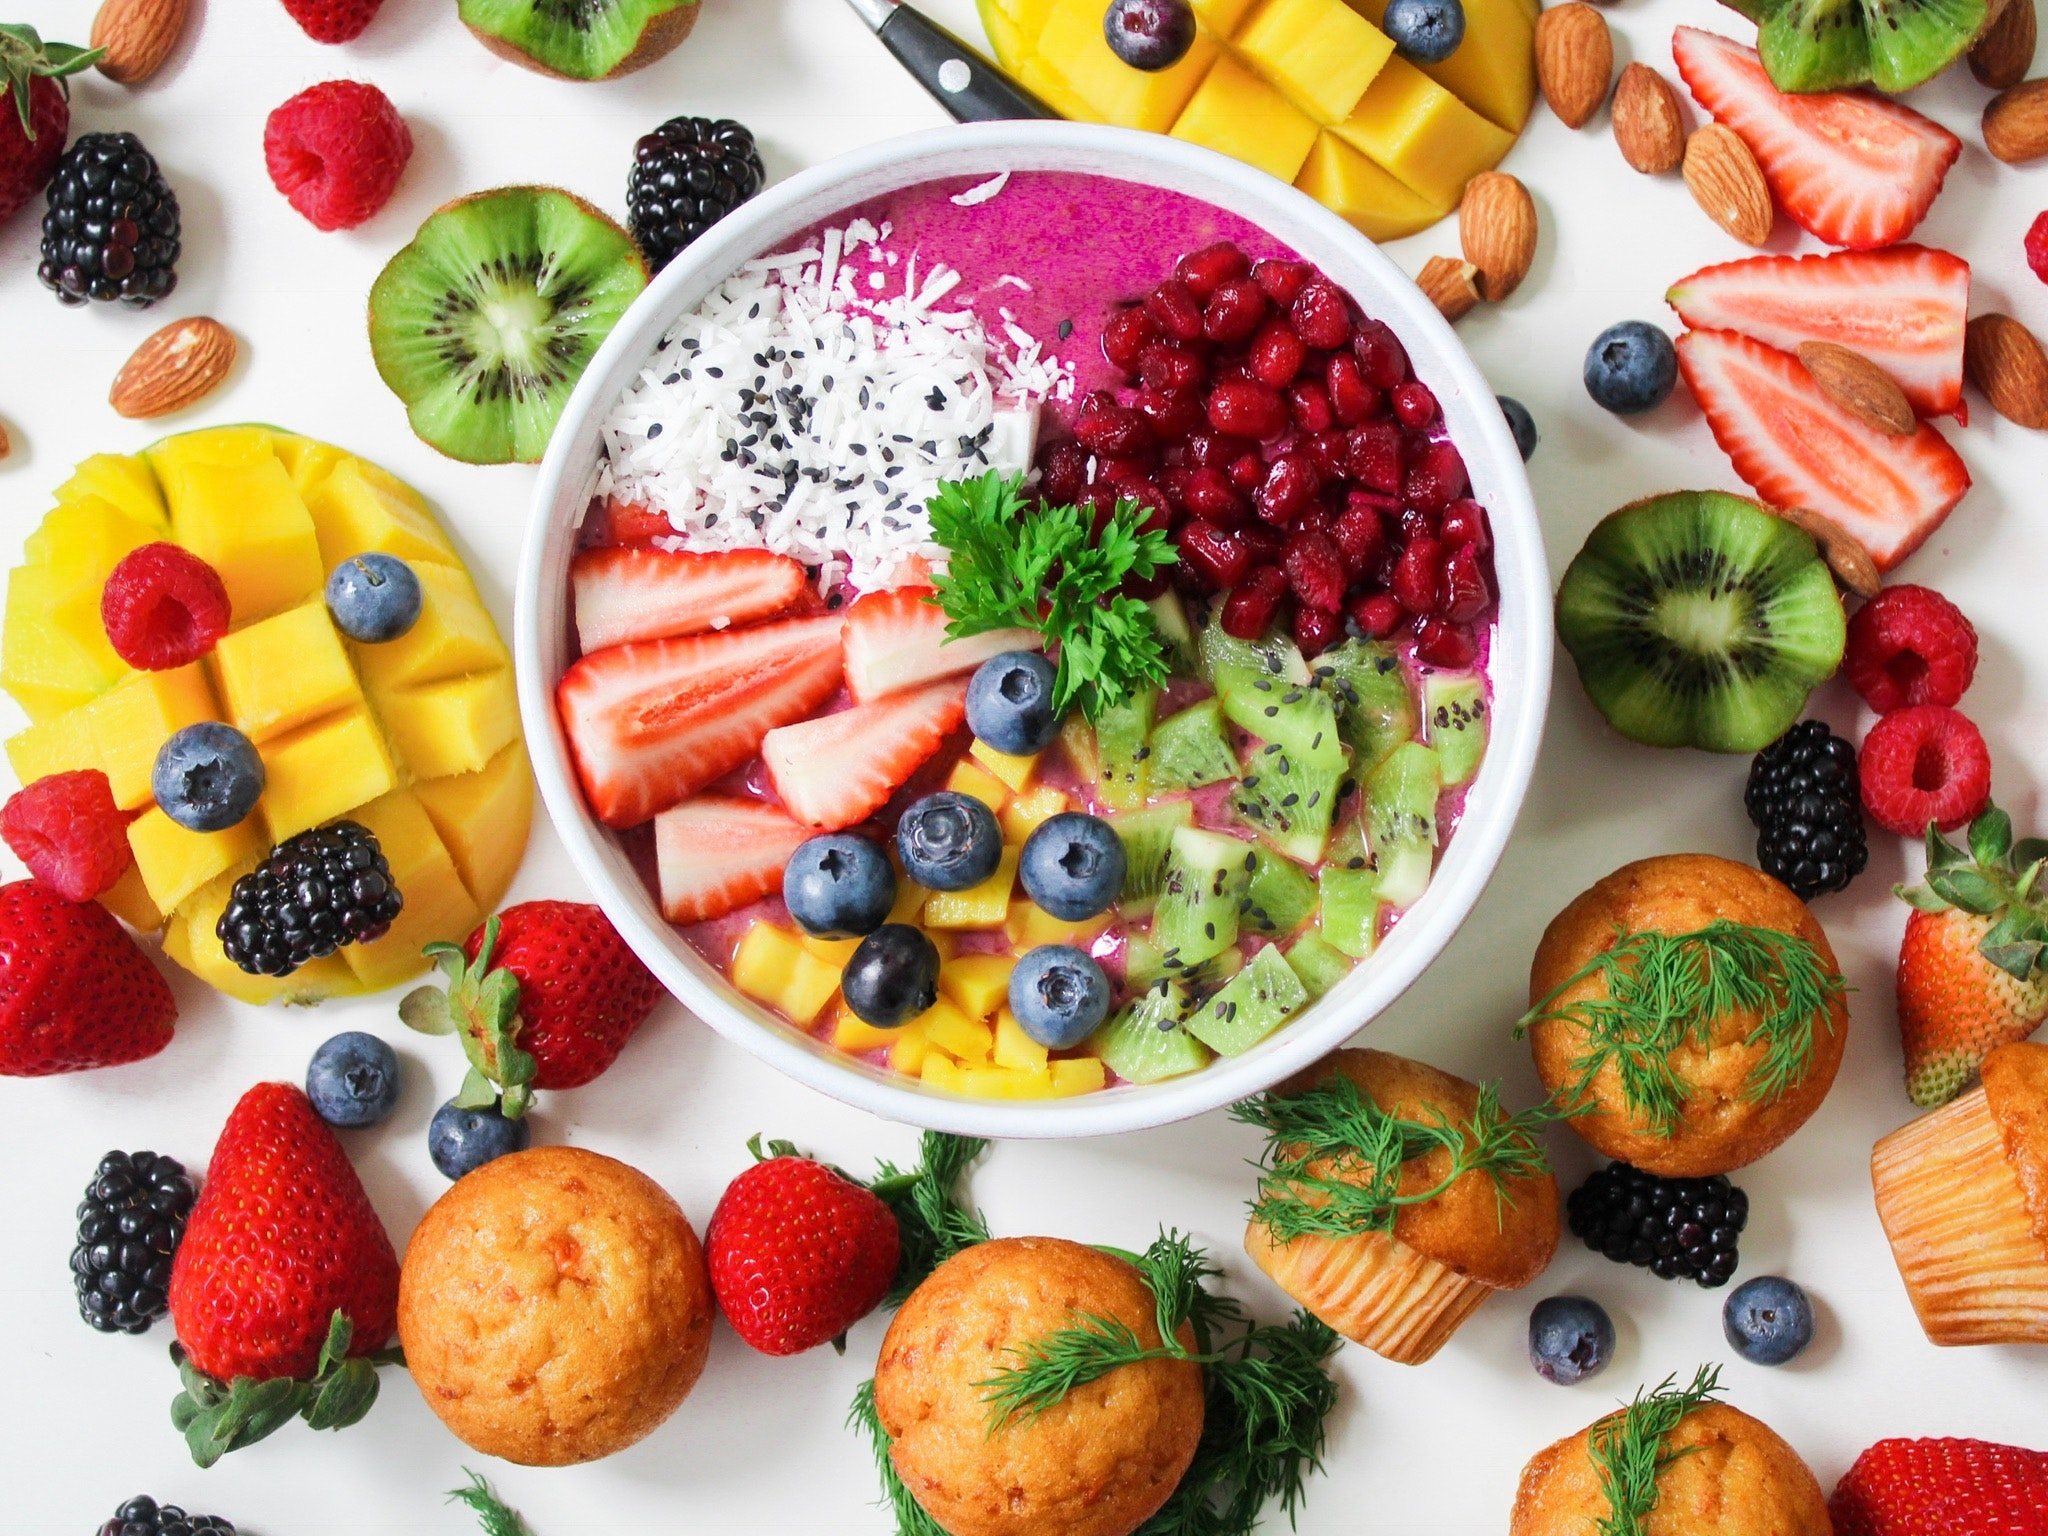 photo of bright colored food, fruit and veggies.